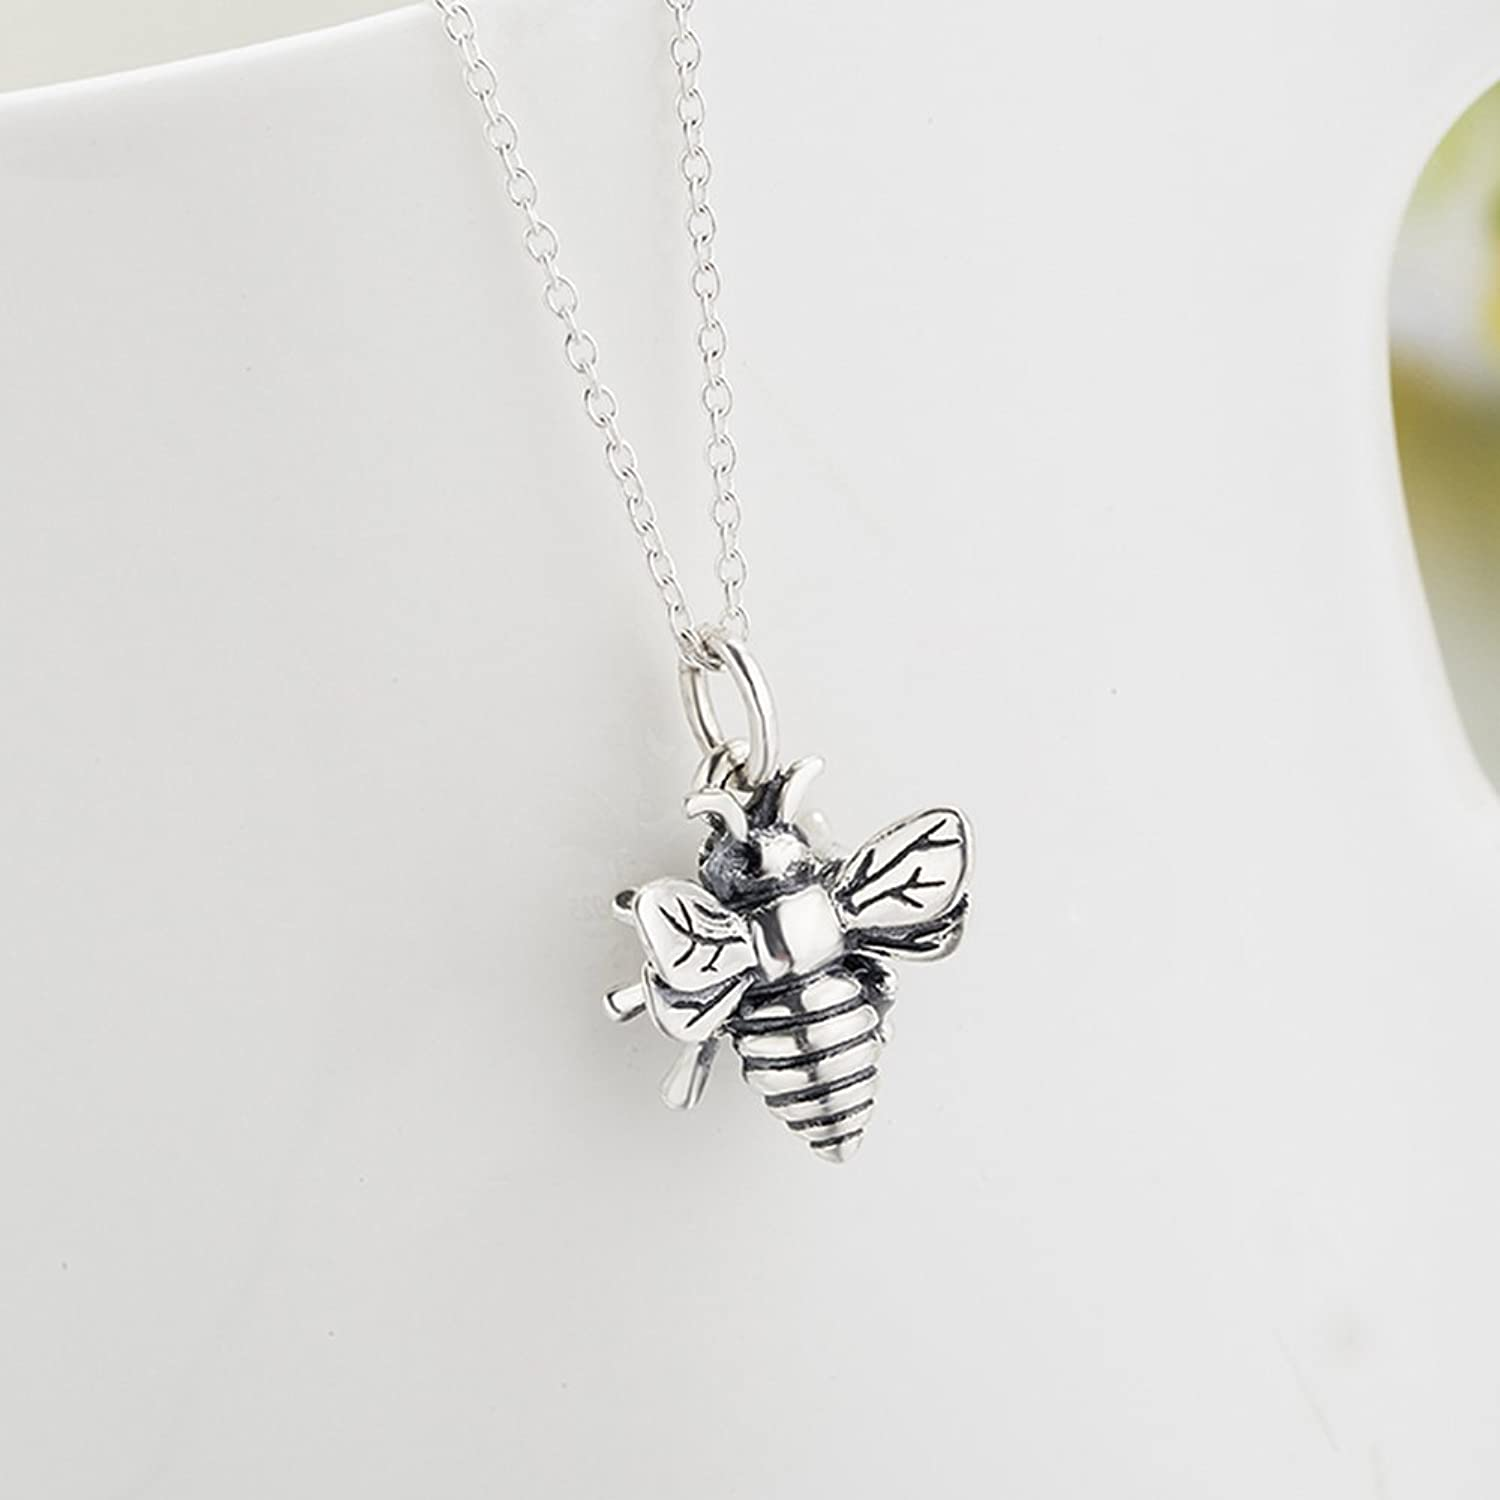 Amazon yfn bee necklace sterling silver bumble bee queen bee amazon yfn bee necklace sterling silver bumble bee queen bee bumblebee charm pendant necklace jewelry aloadofball Image collections